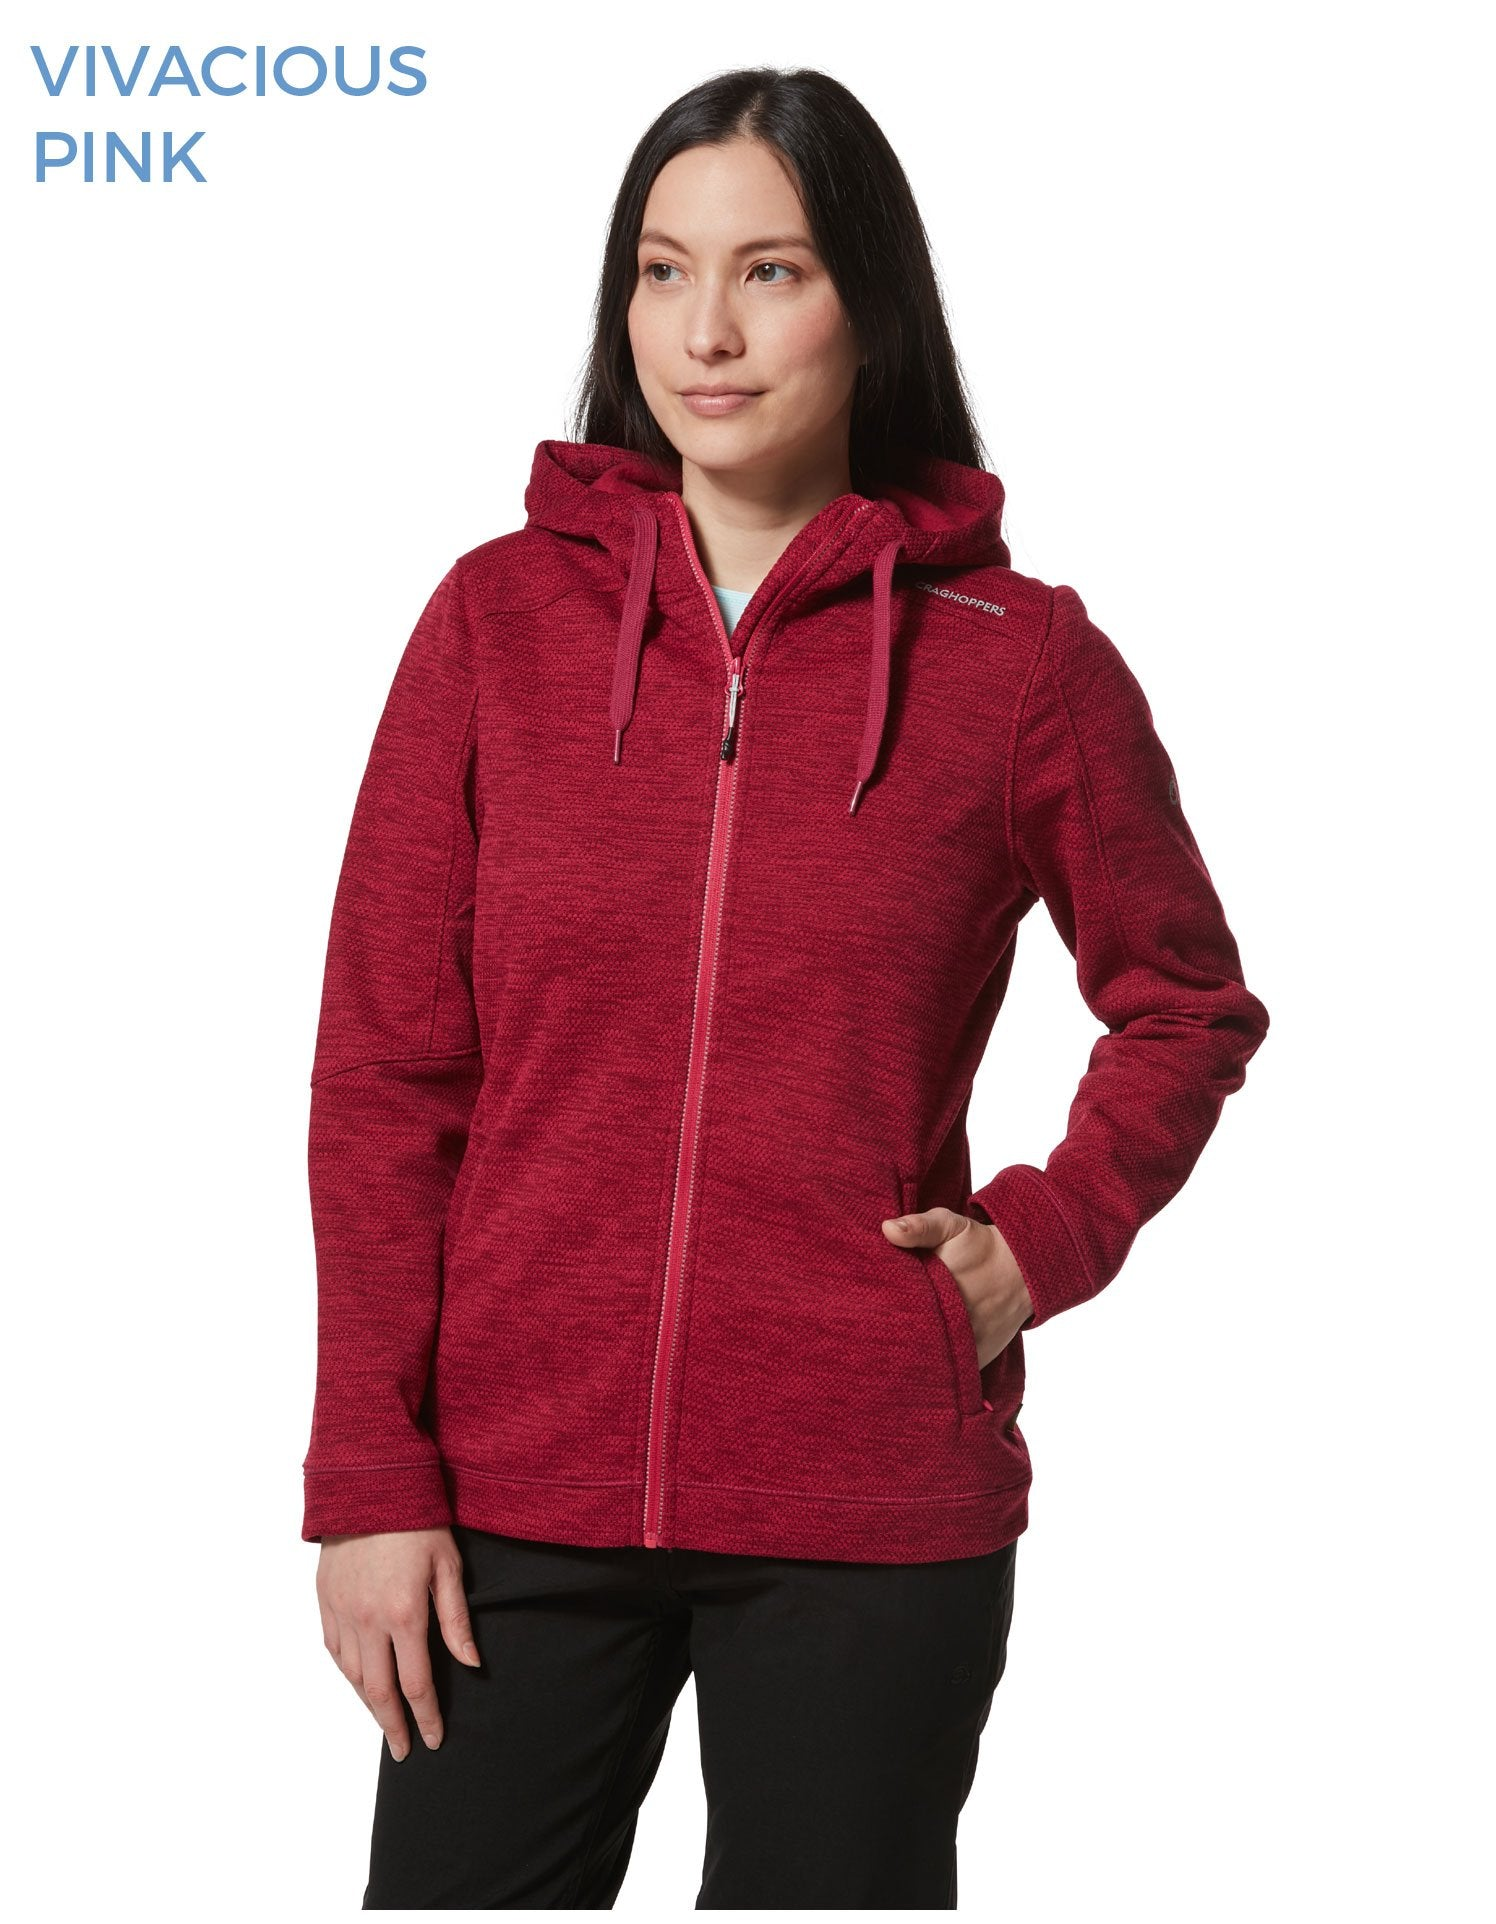 Vivacious Pink Strata Fleece Hoody by Craghoppers